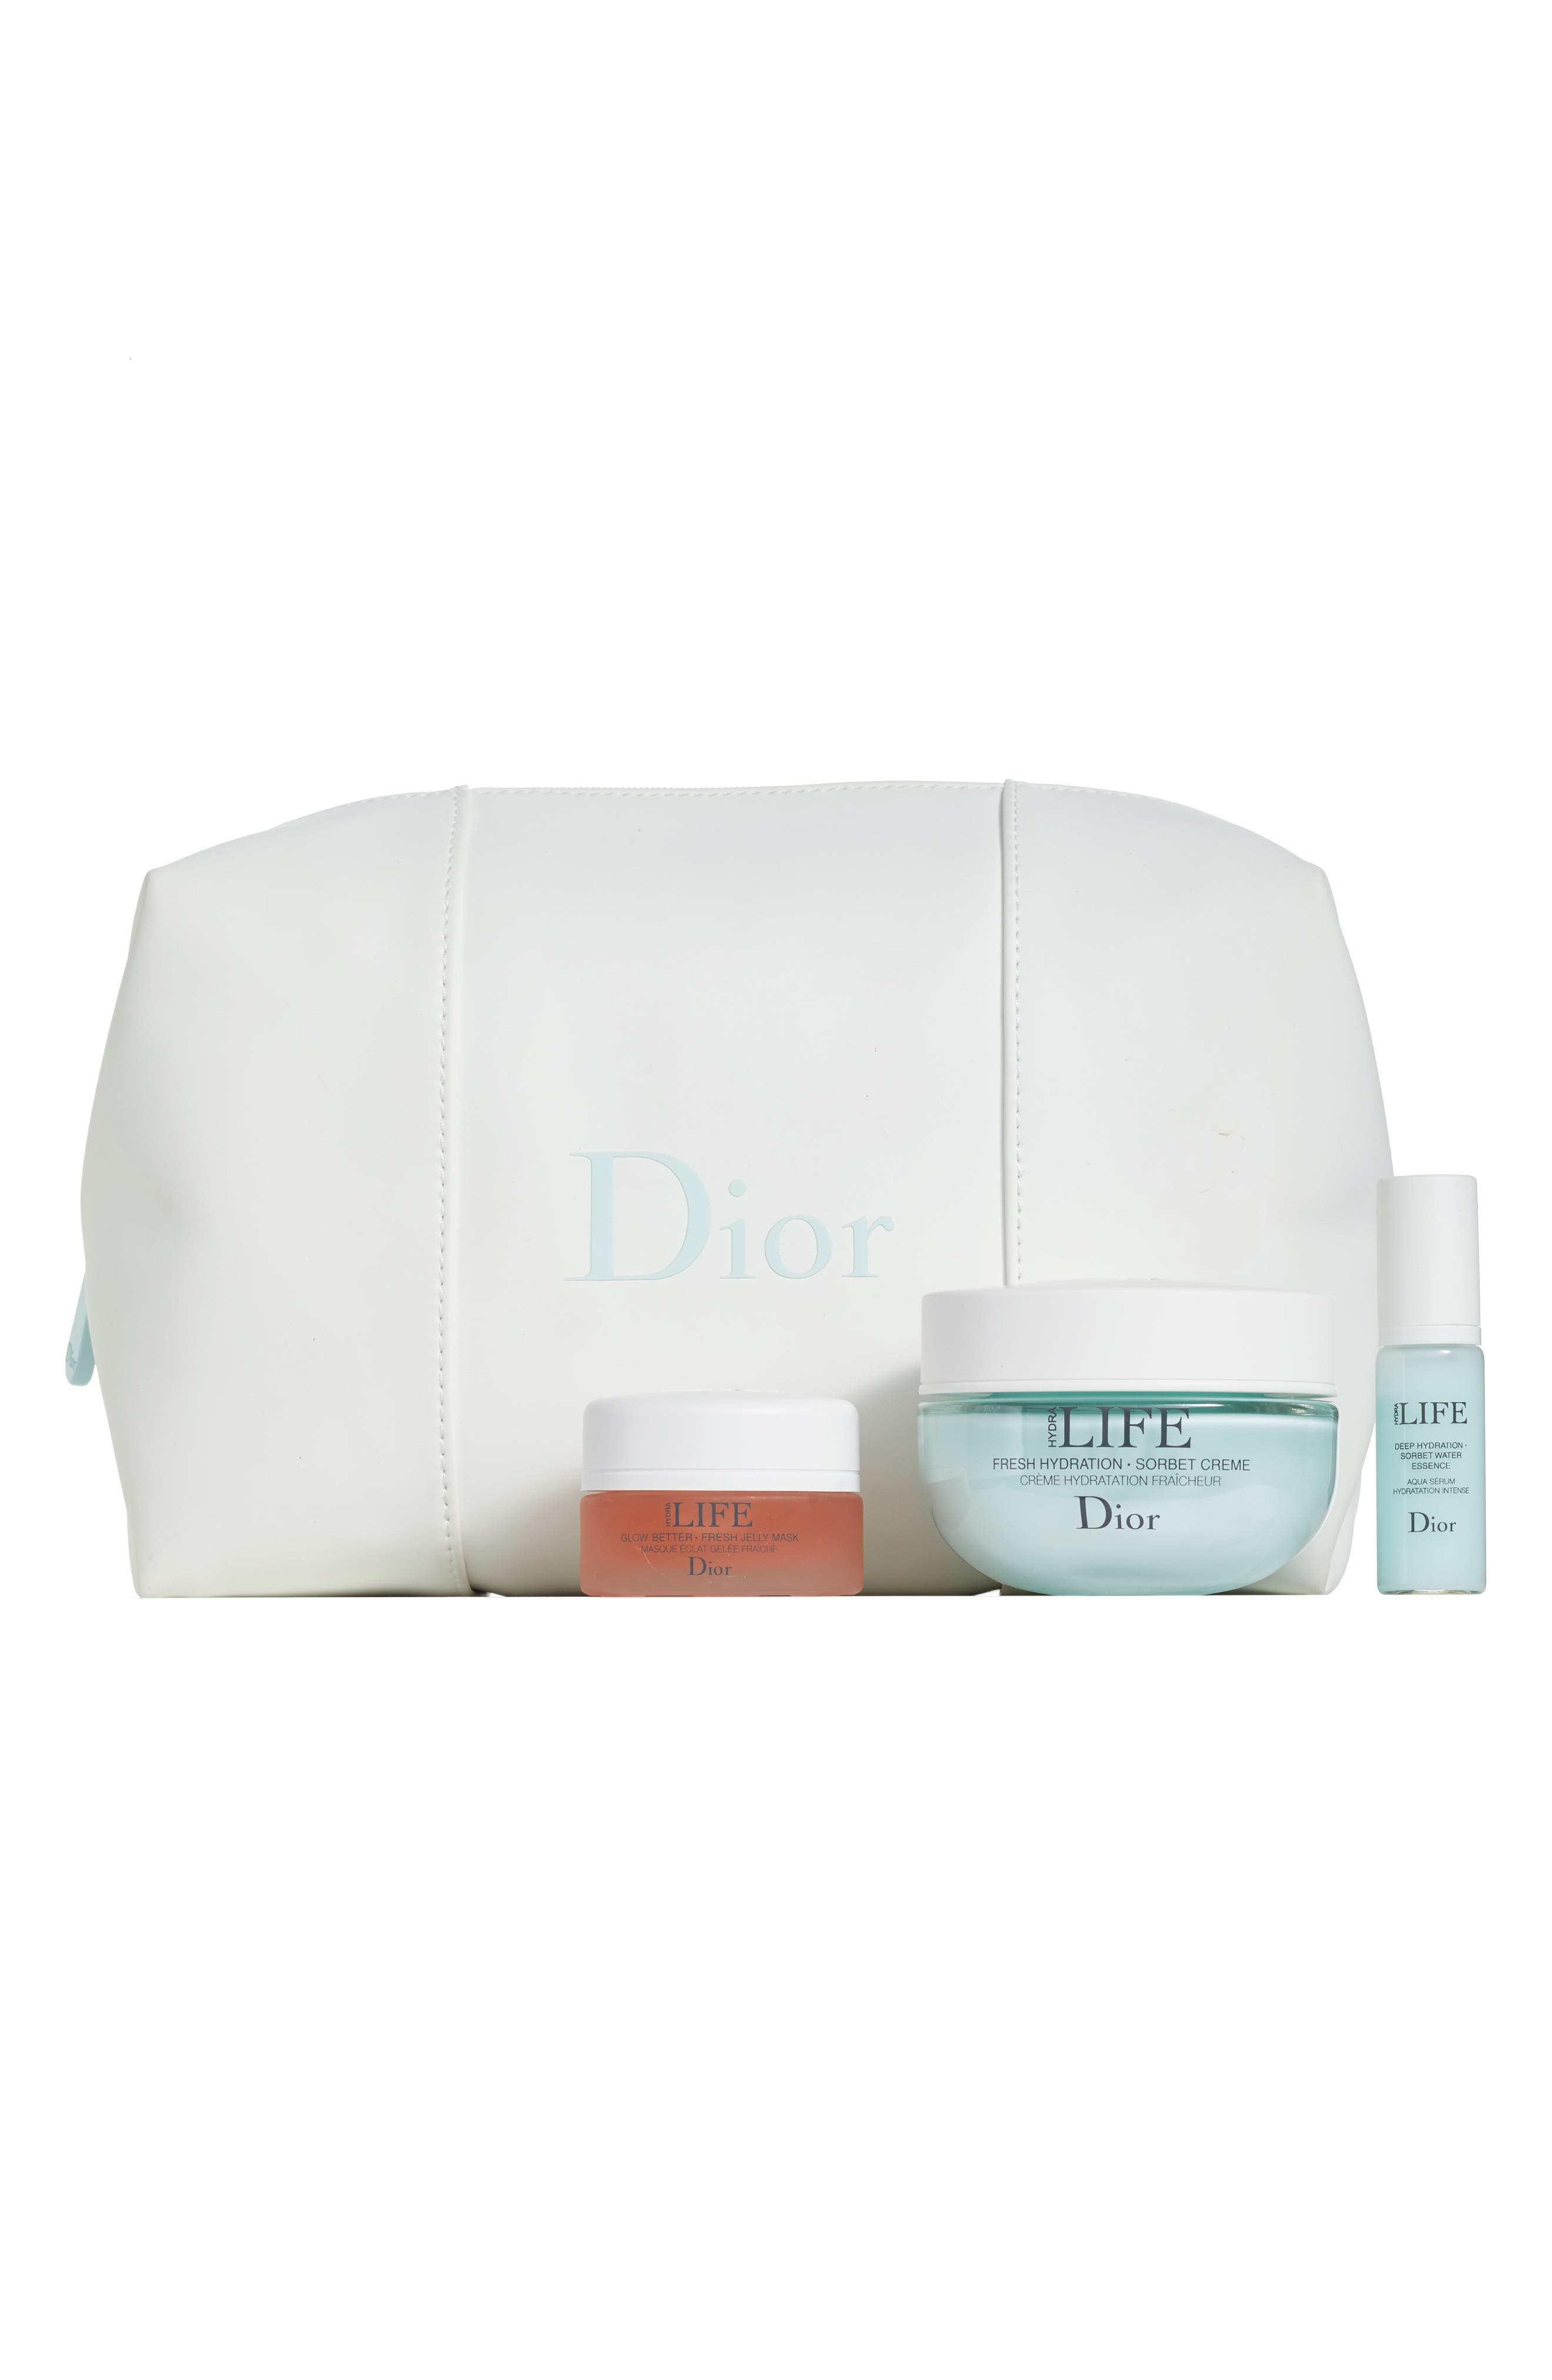 Dior Hydra Life Set ($102 Value)